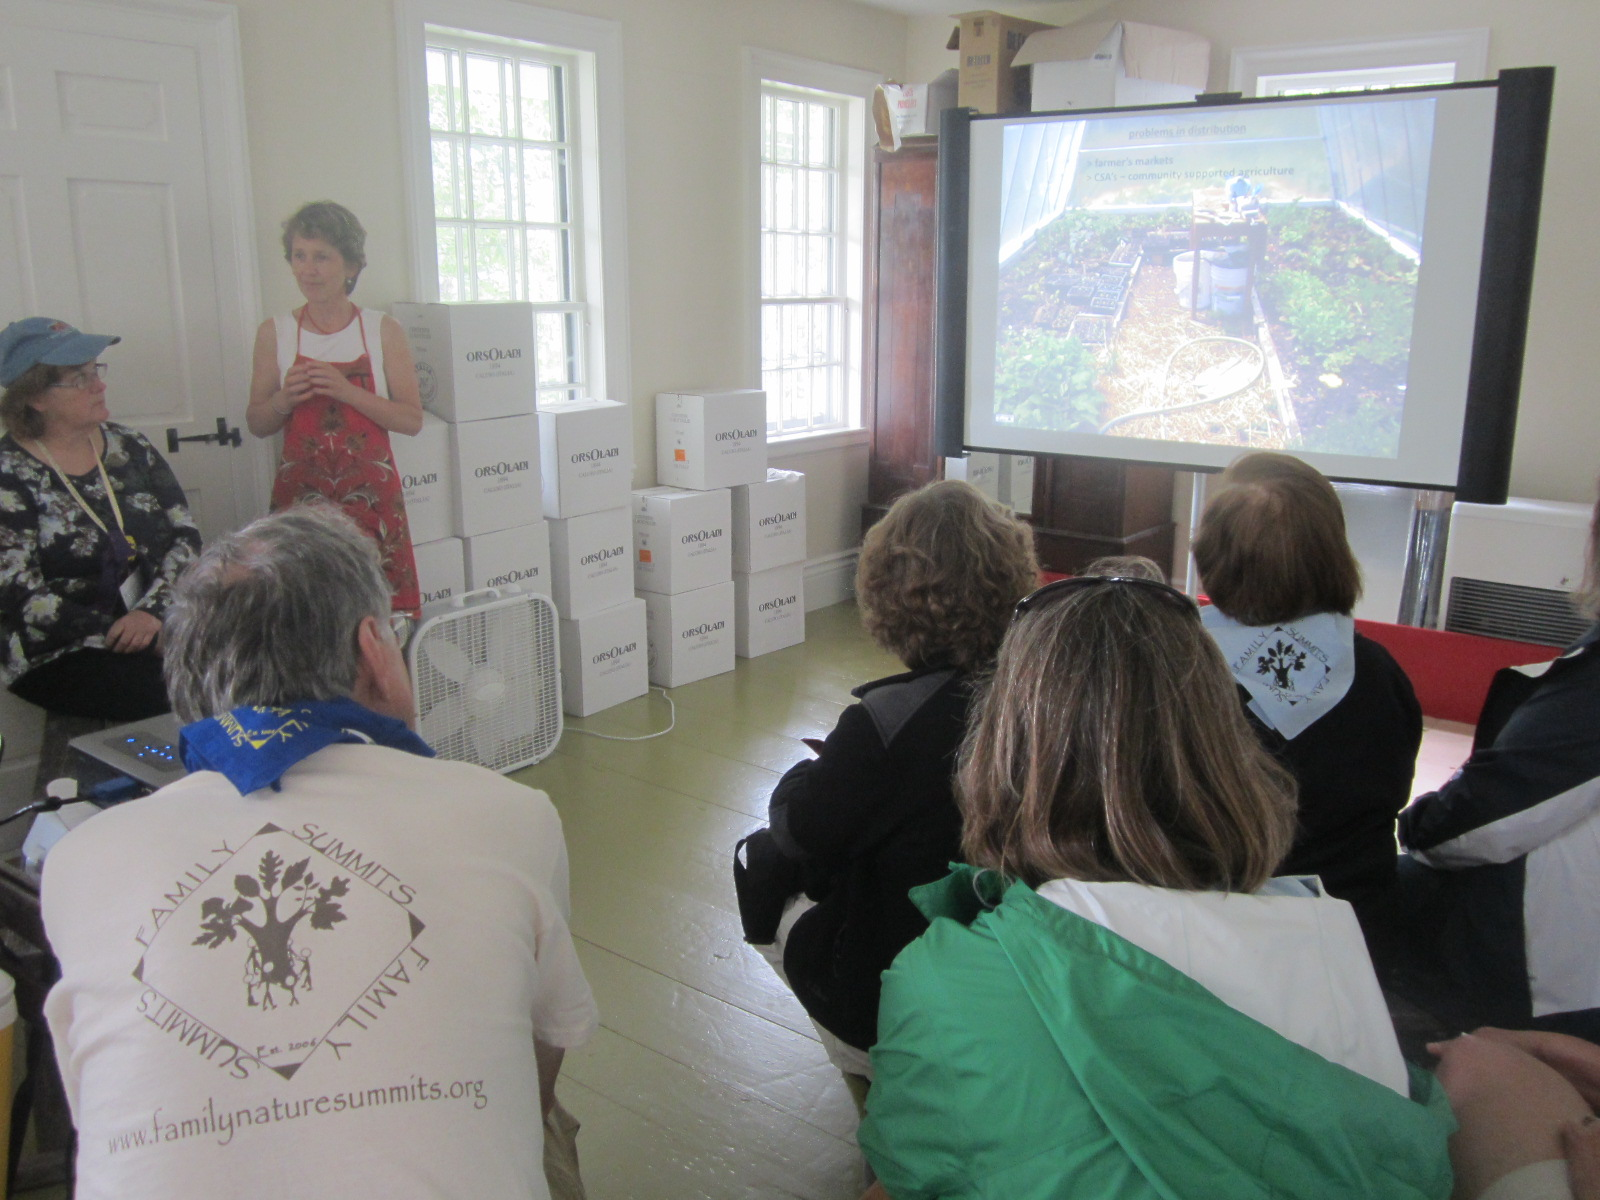 Farm Drop presentation by Mary Alice Hurvitt